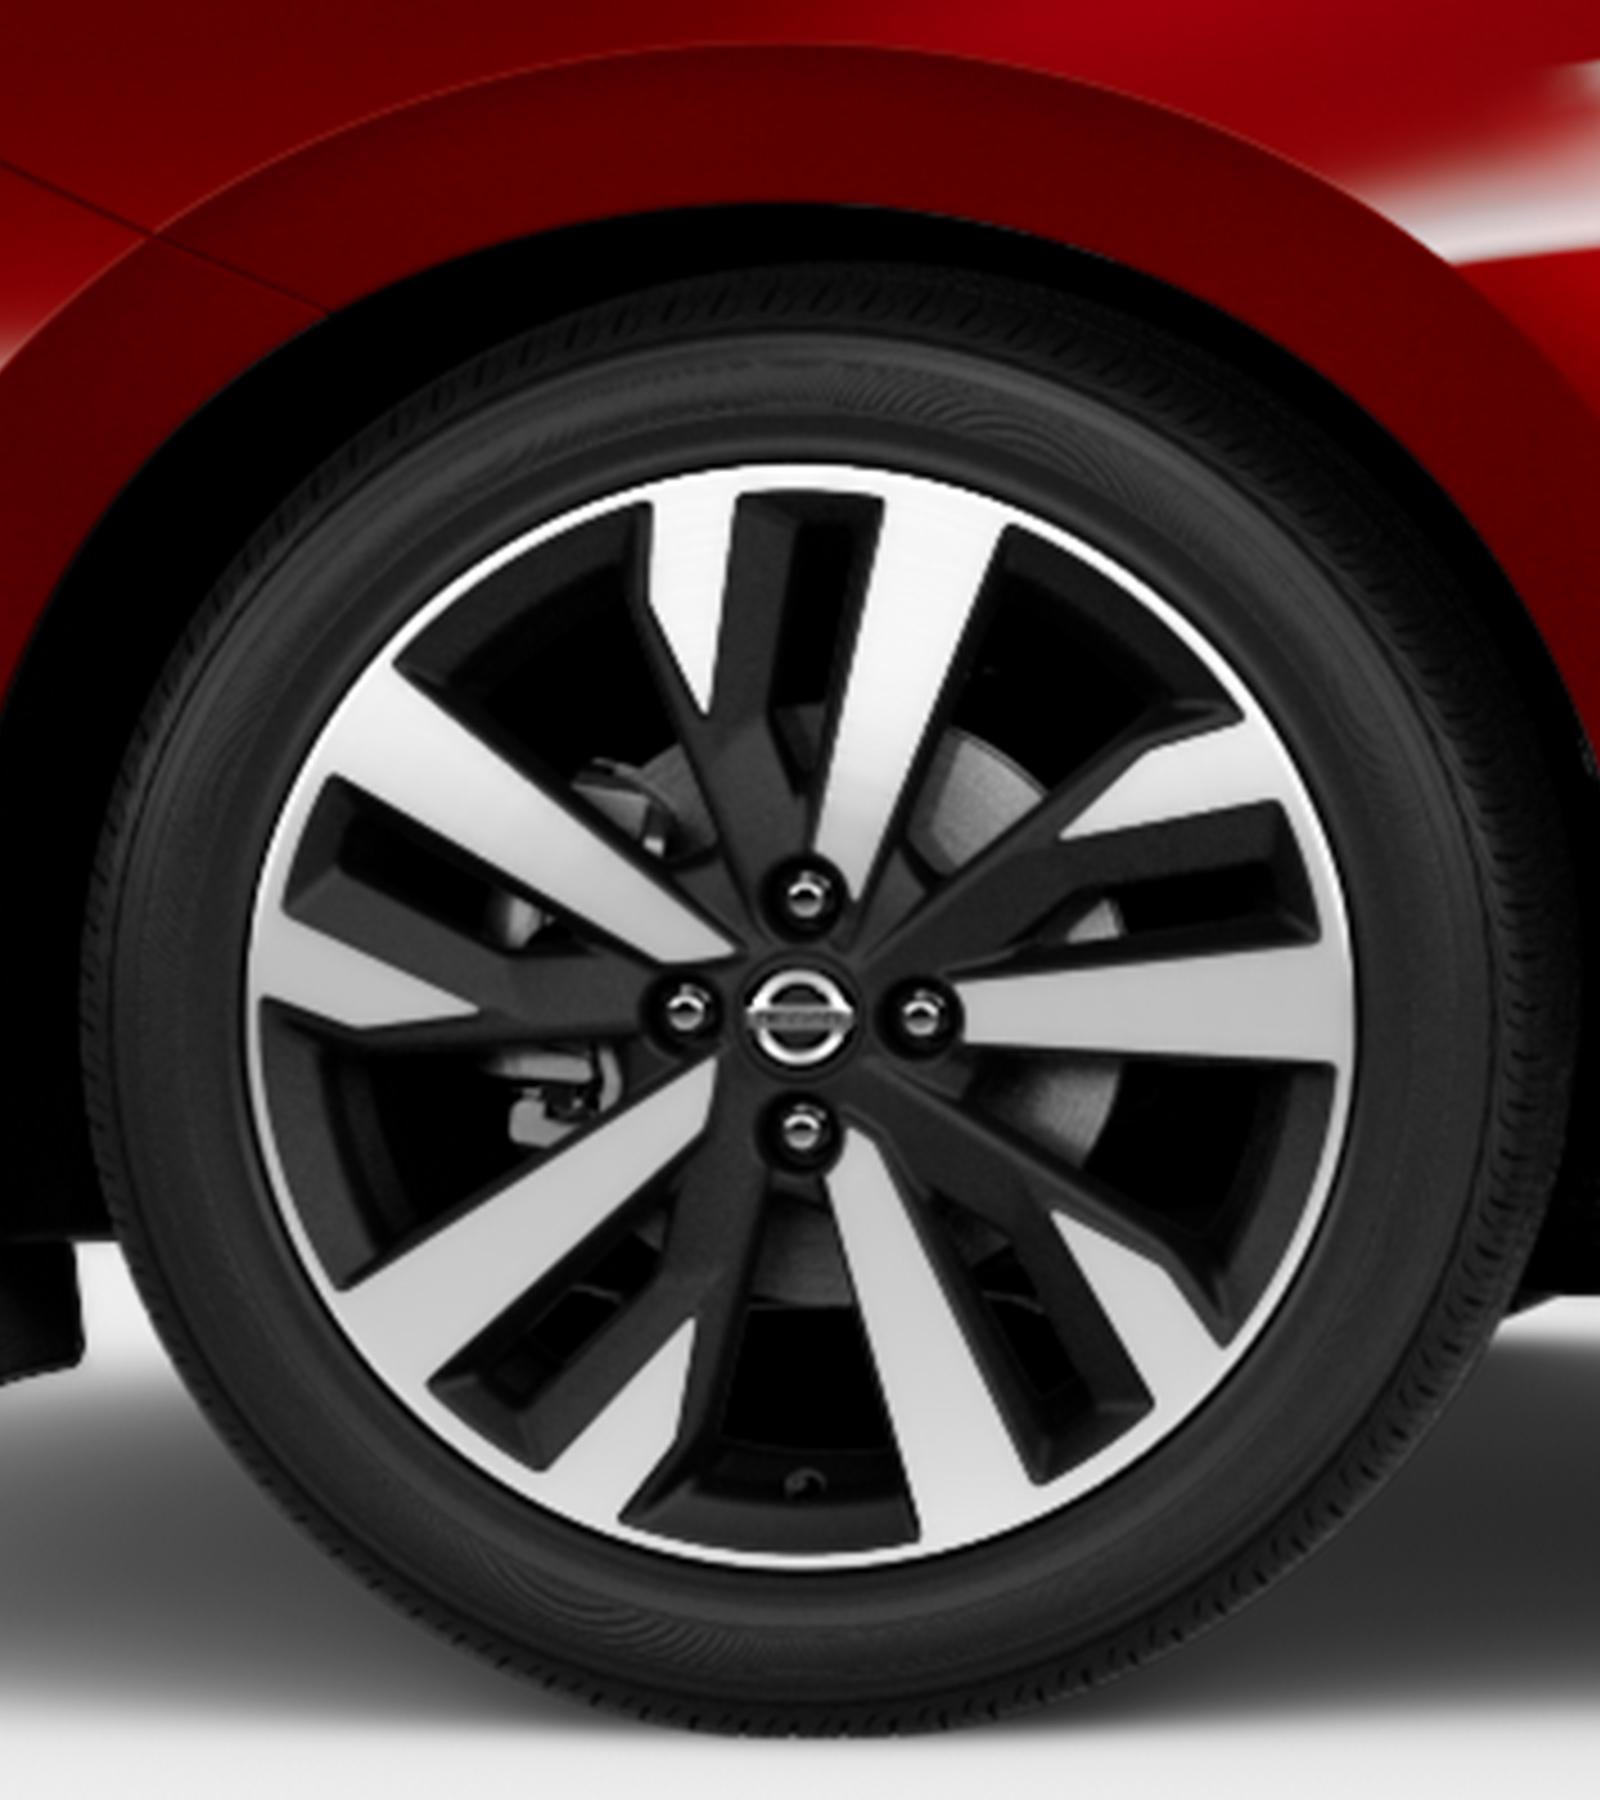 2020 Nissan Versa alloy wheel